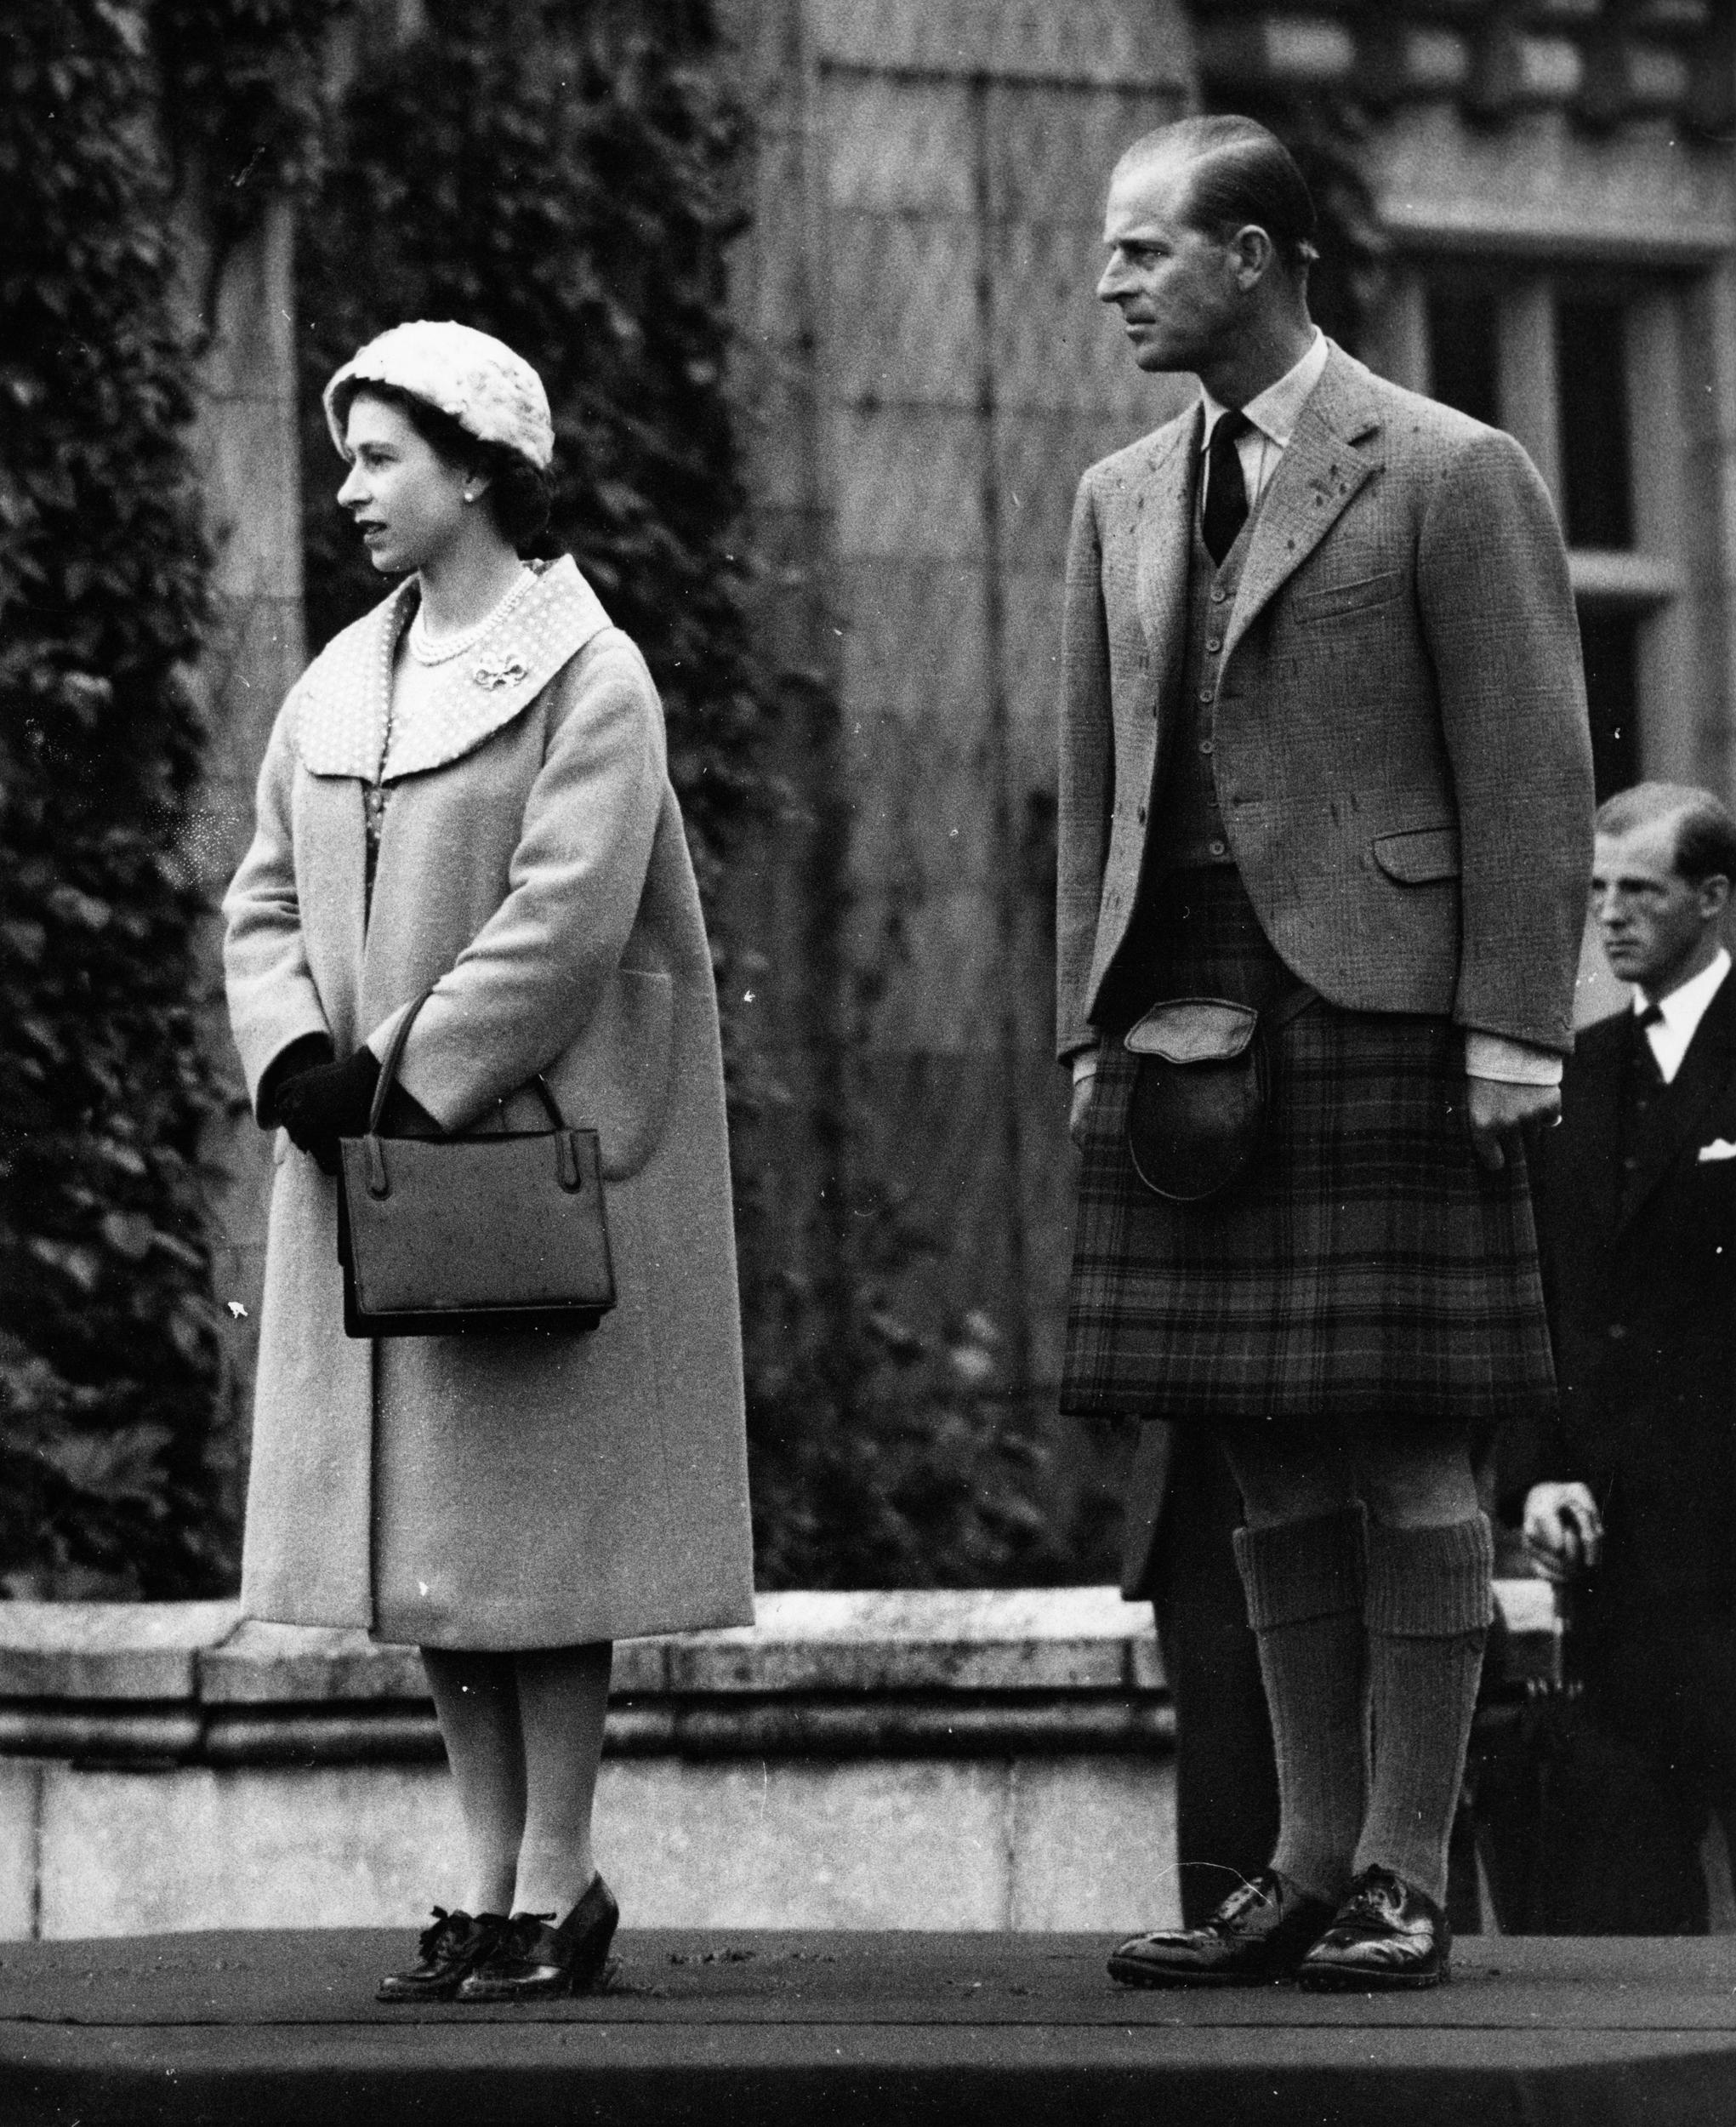 Queen Elizabeth II, with the Duke of Edinburgh, takes the salute as 1,200 members of the Boys Brigade Council march past at Balmoral Castle.